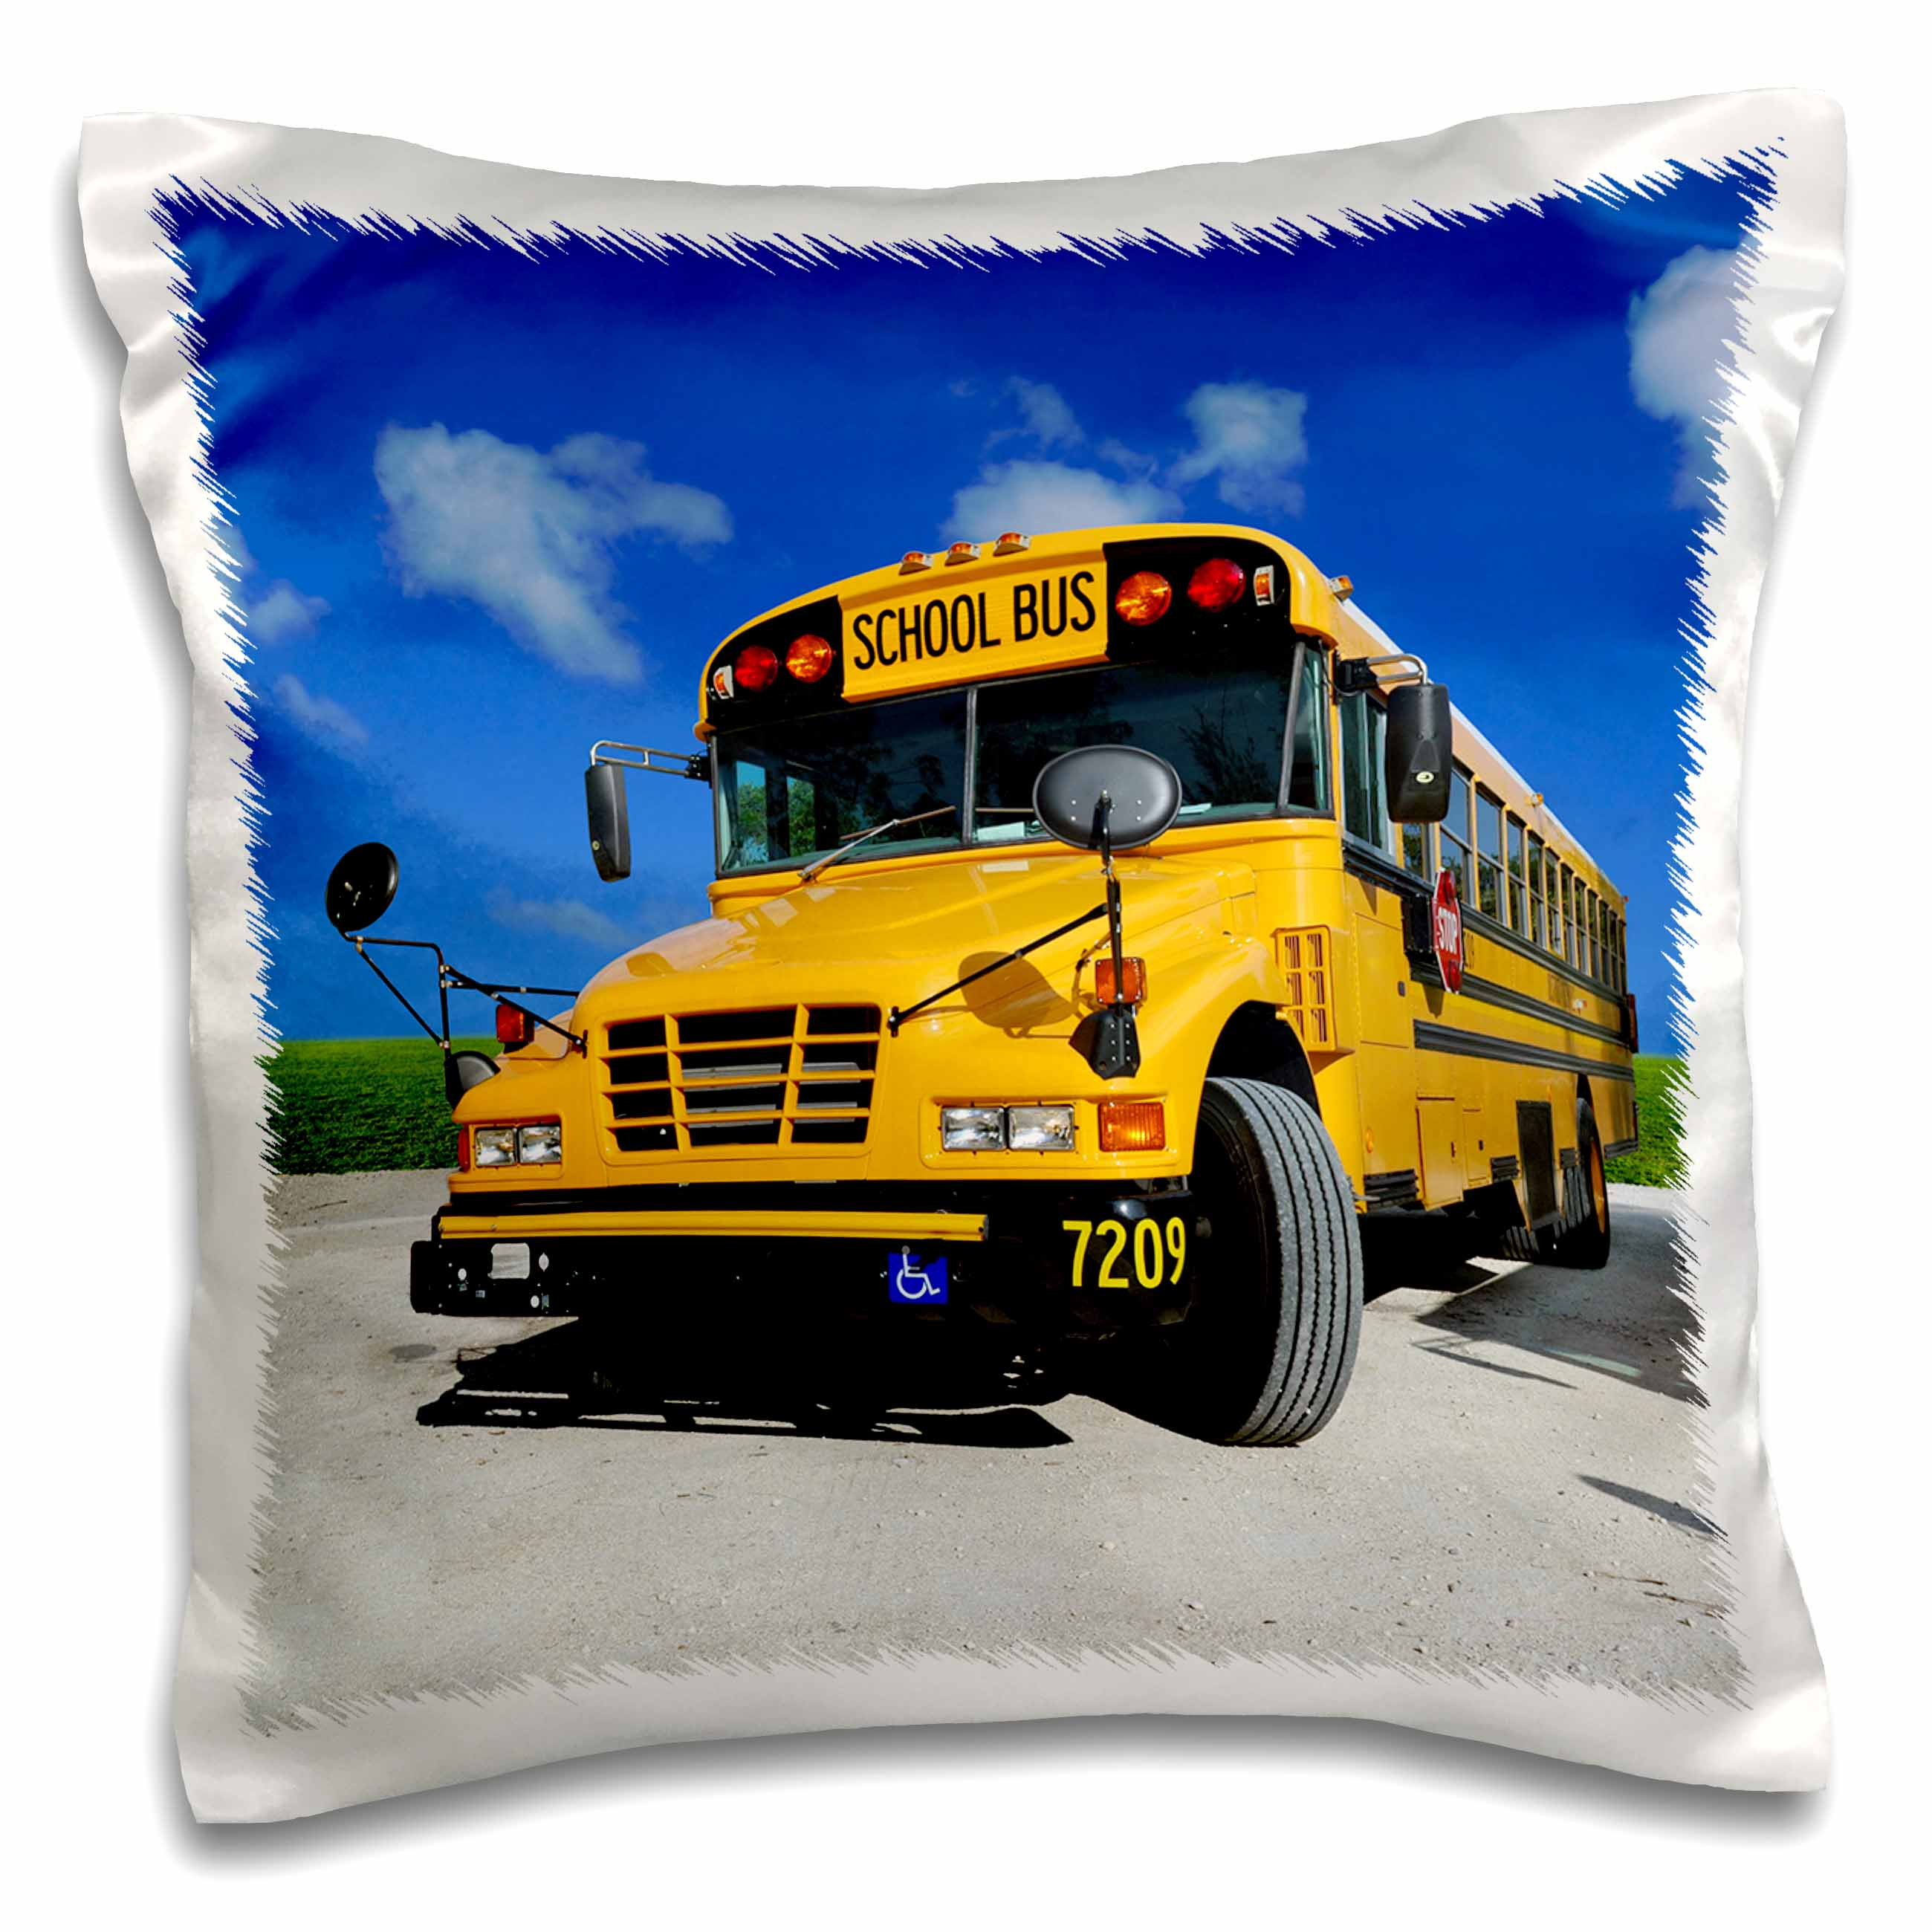 3dRose Yellow school bus on a sunny day, Pillow Case, 16 by 16-inch